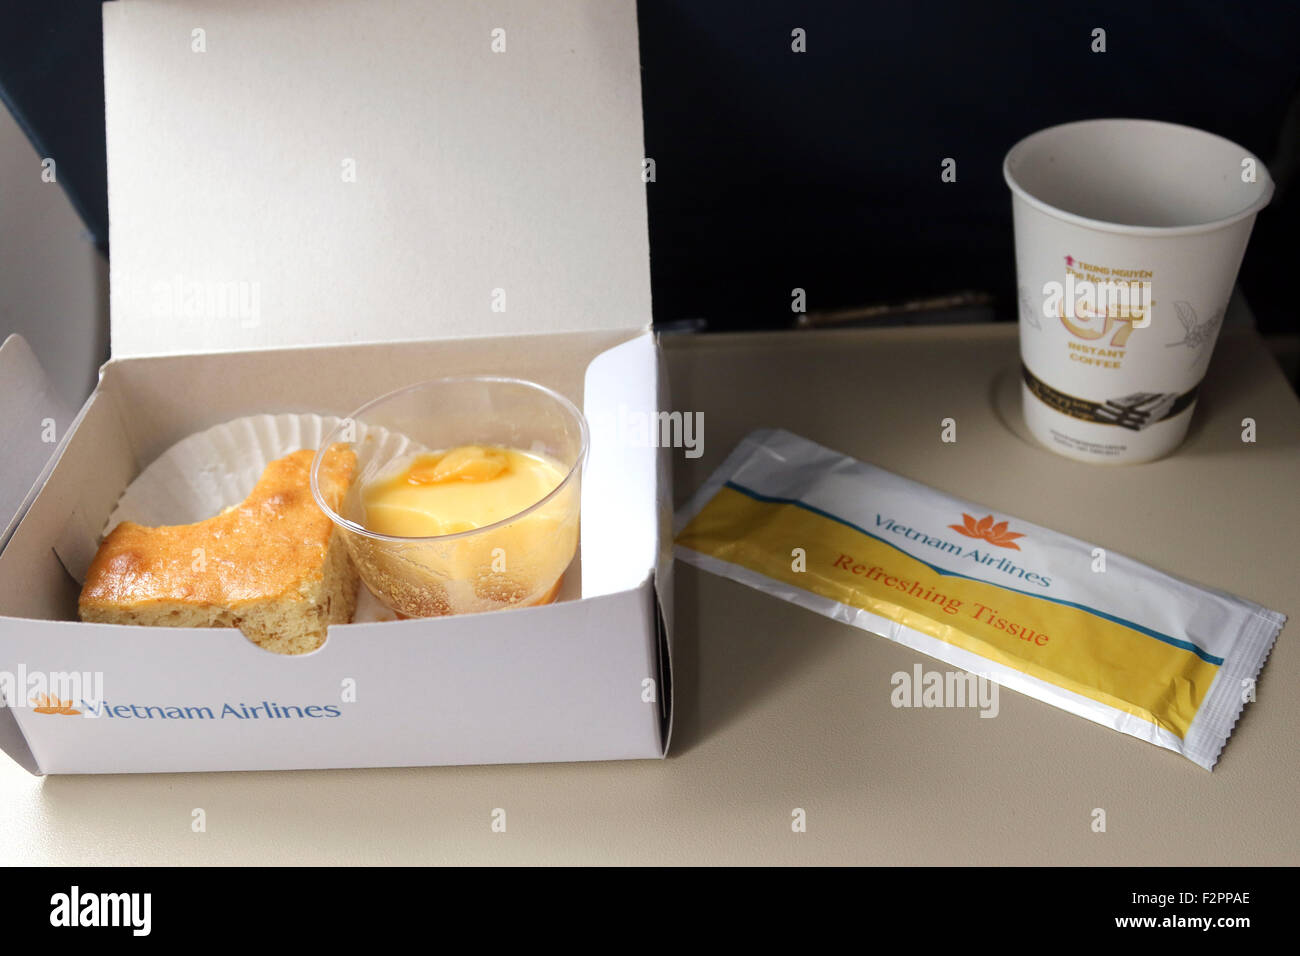 La compagnie aérienne Vietnam Airlines meal food drink essuyer Photo Stock